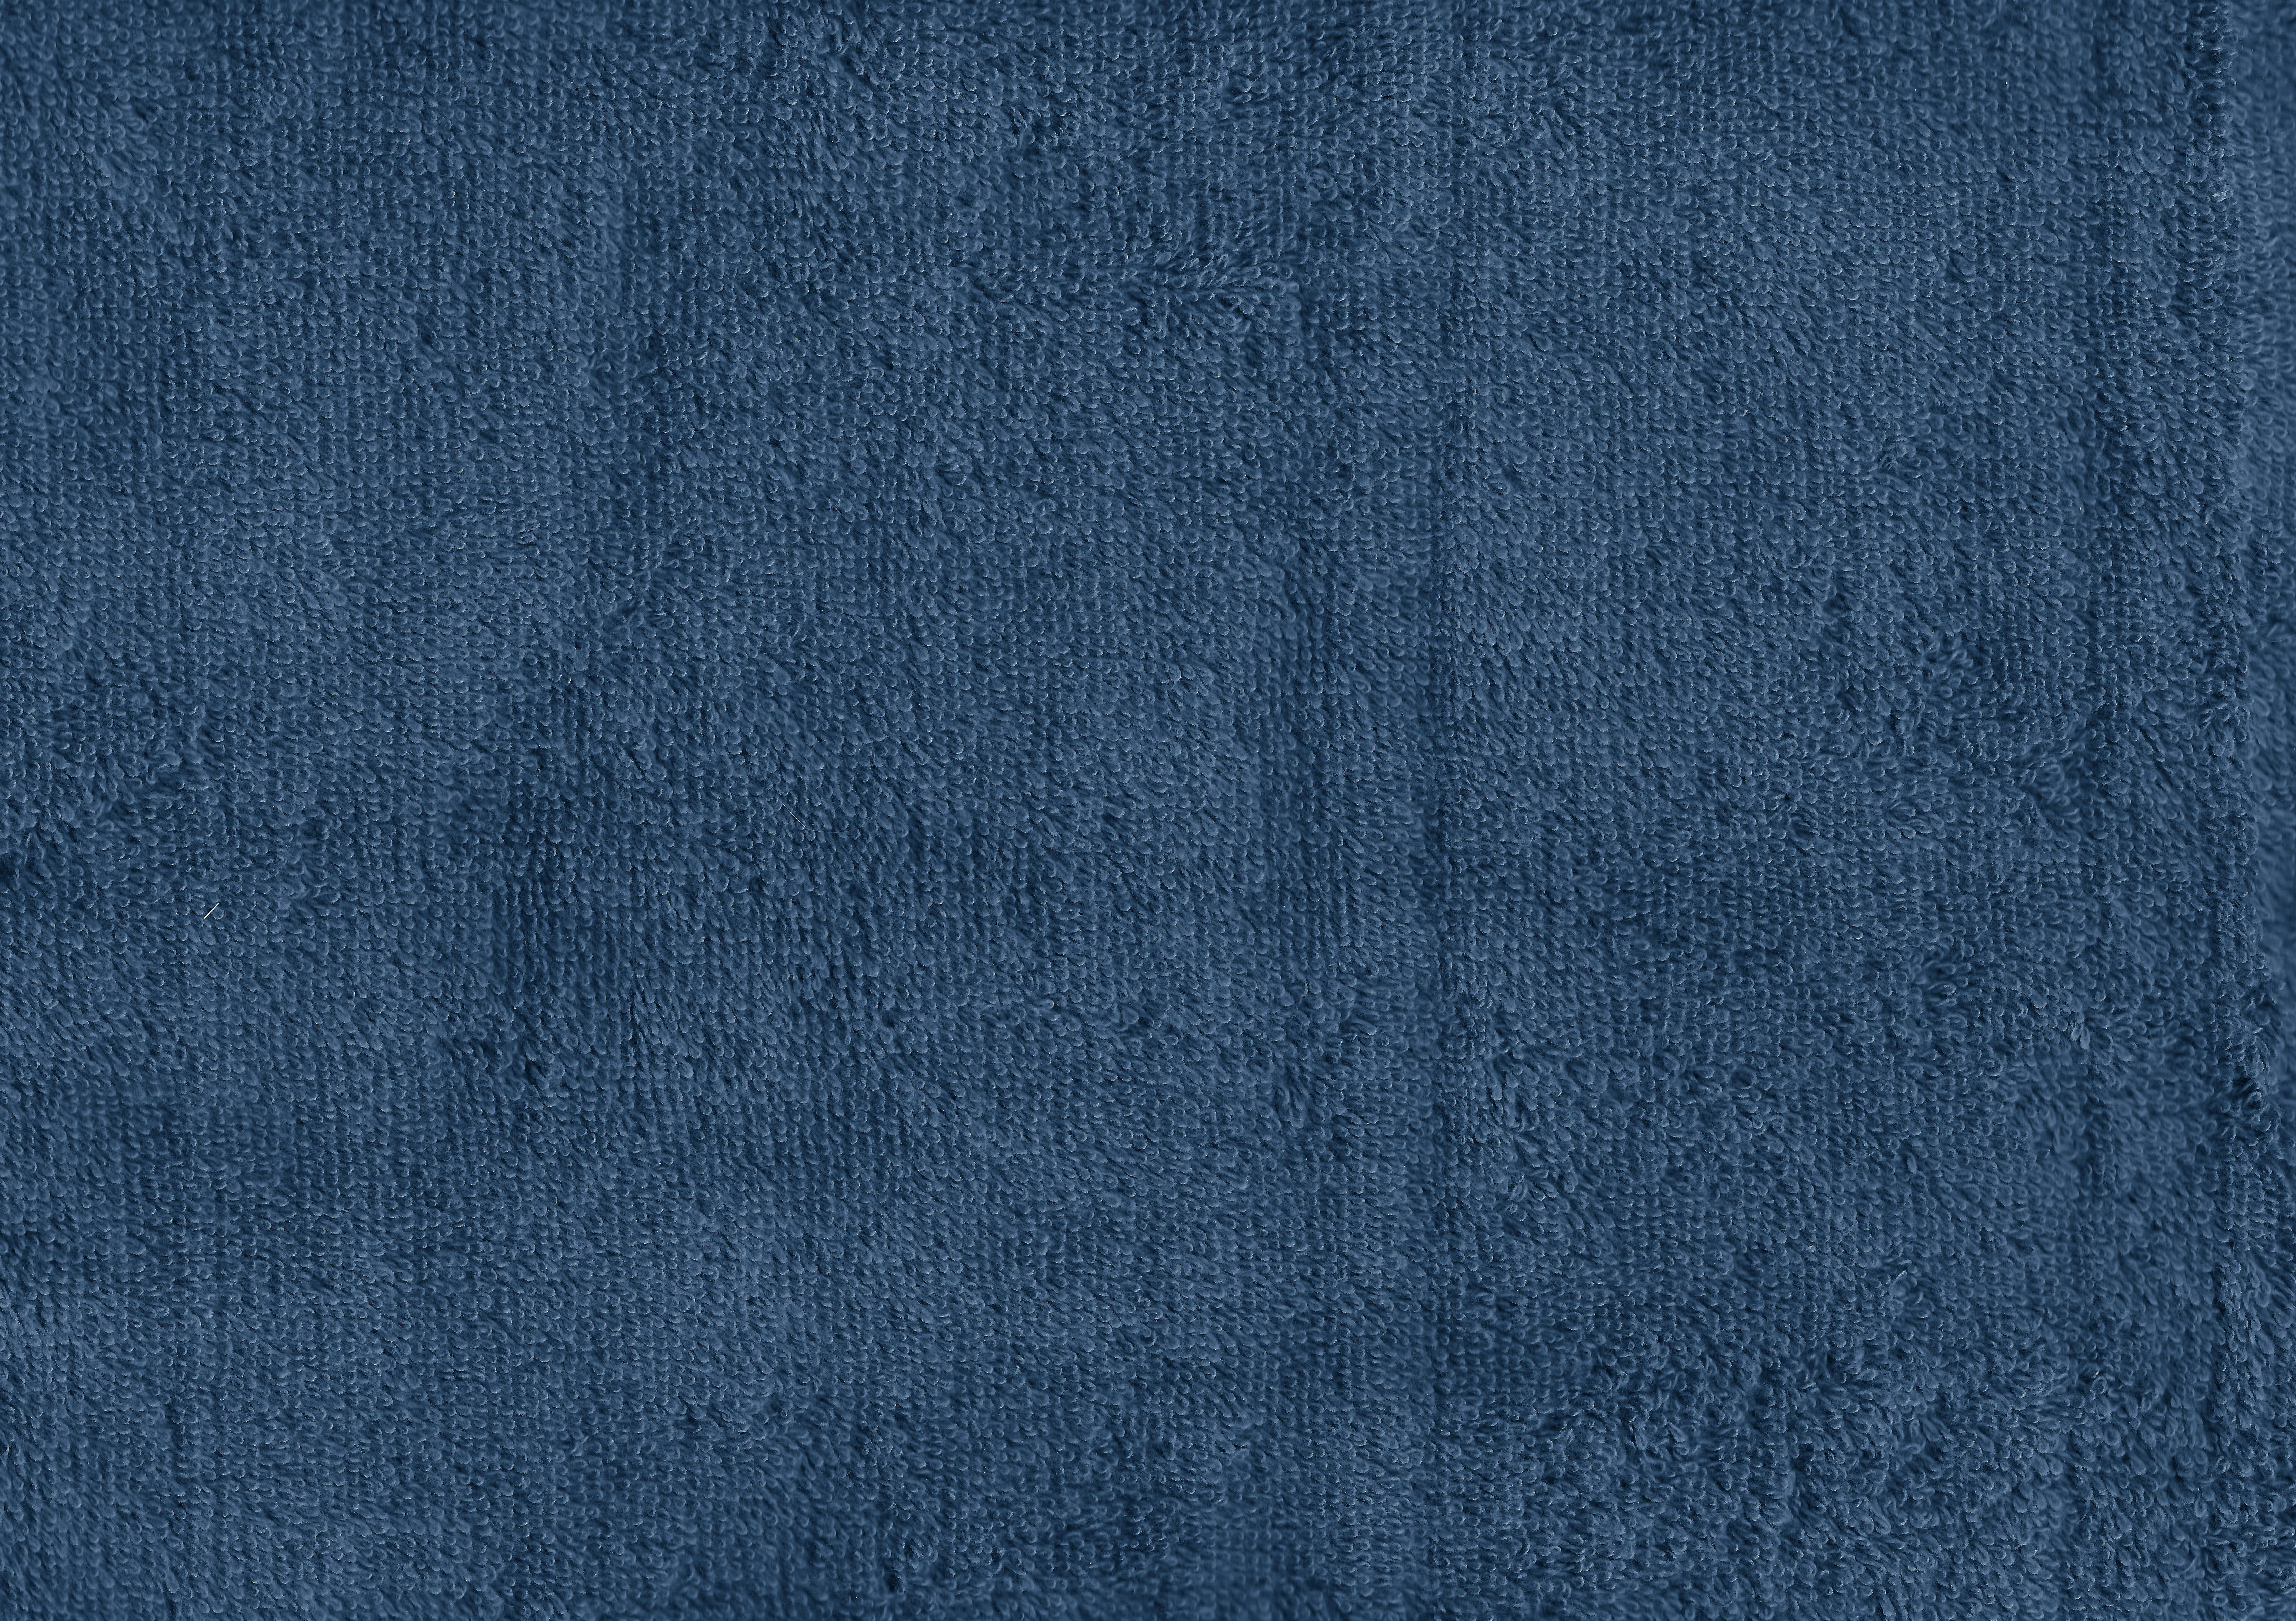 Blue Gray Terry Cloth Towel Texture Picture Free